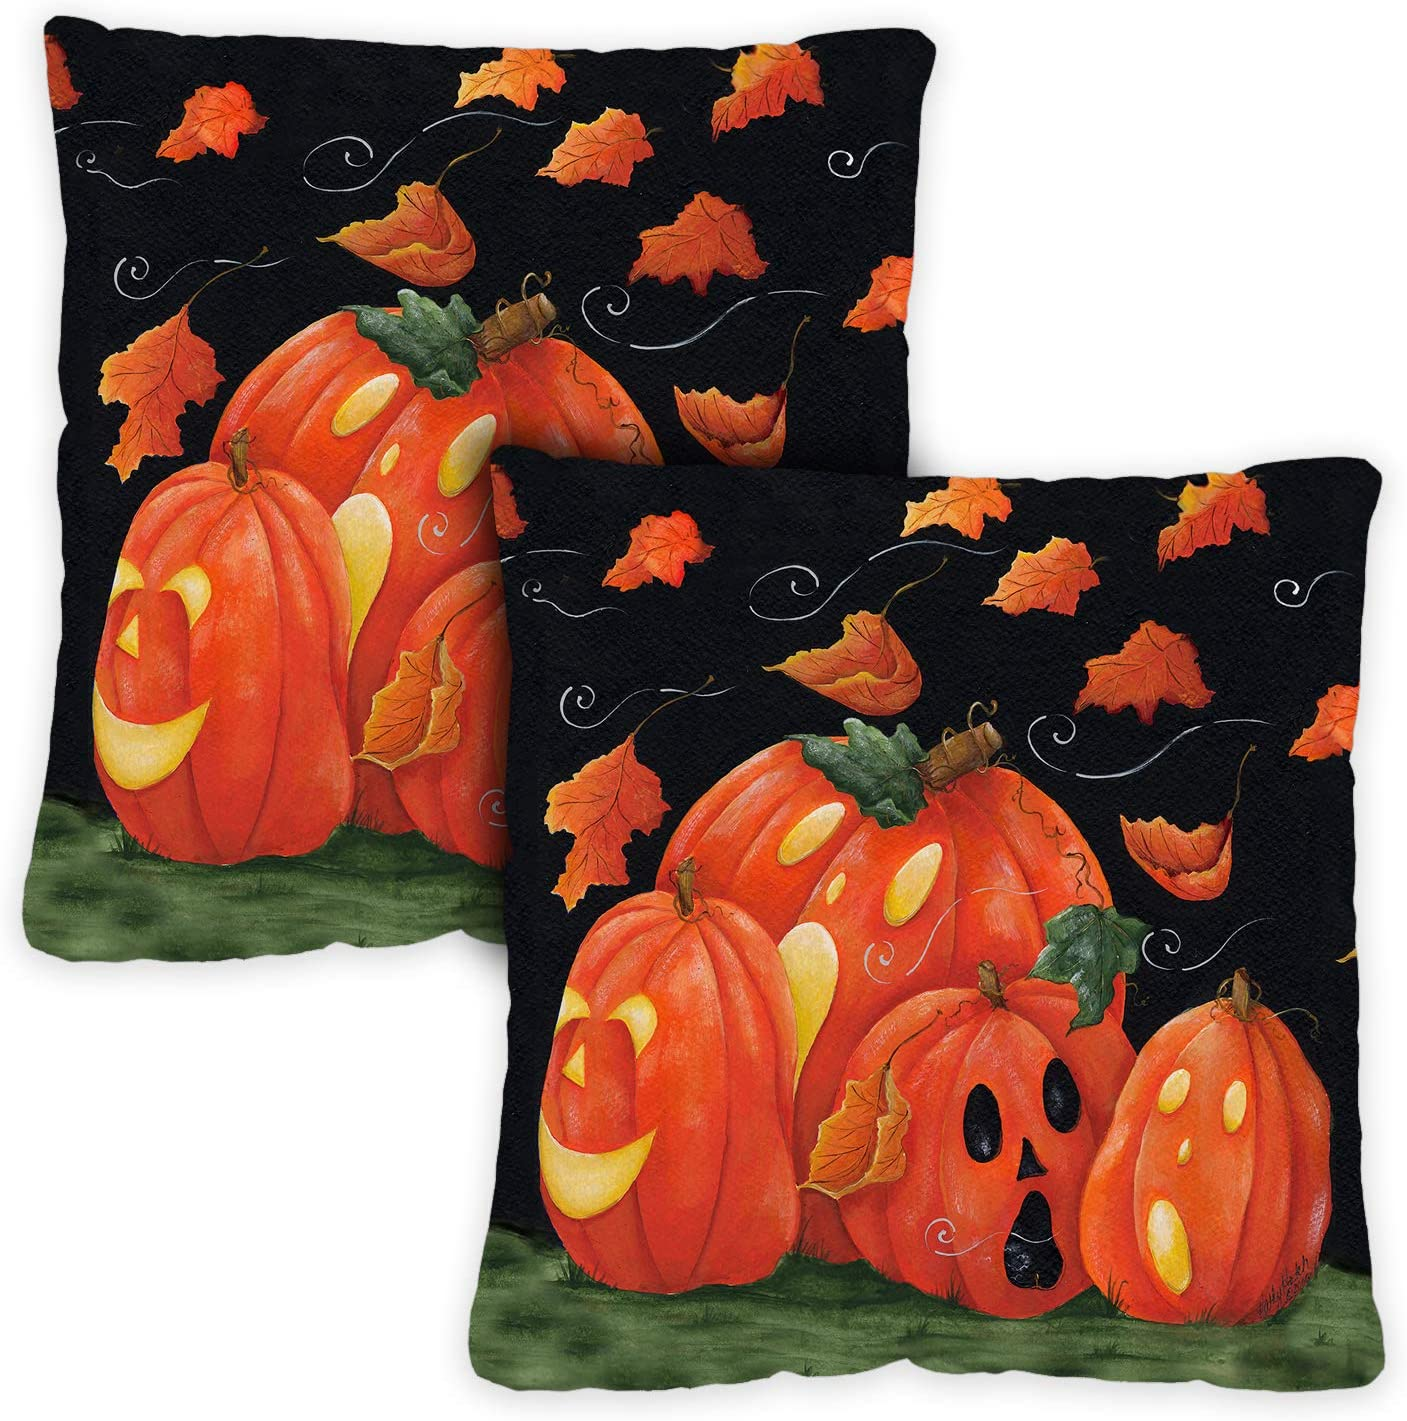 Toland Home Garden 761294 Scary Night 18 x 18 Inch Indoor/Outdoor, Pillow Case (2-Pack)